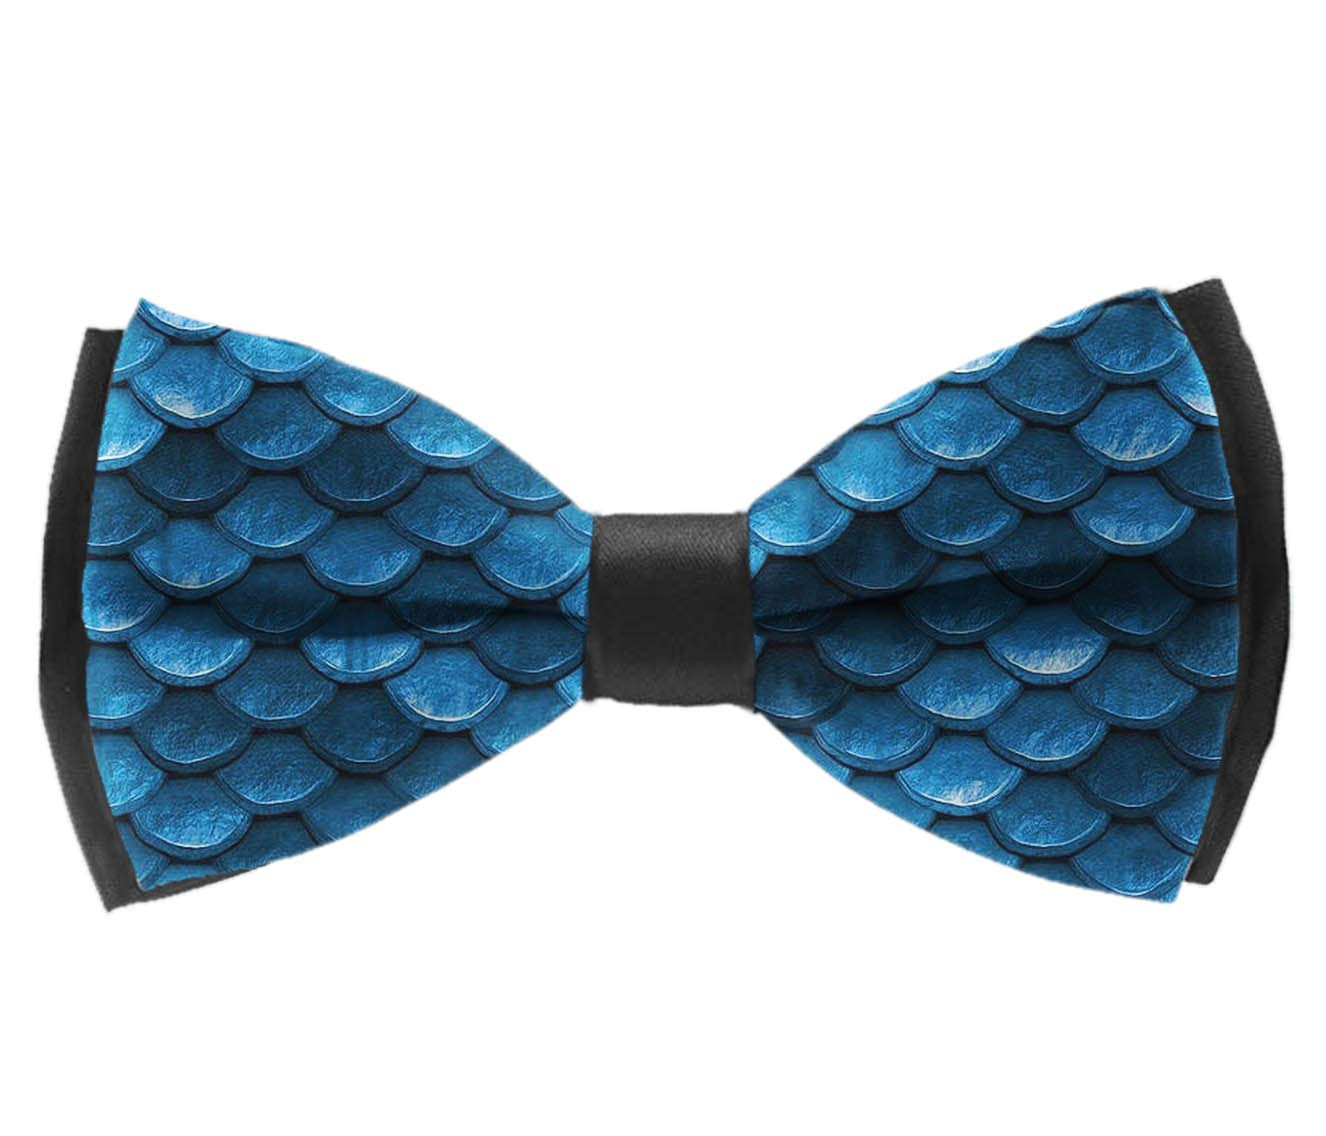 INWANZI Bahama sea Blue Mermaid Fish Scales Men Pre-Tied Bowtie with Adjustable Length Classic Party Bow Tie